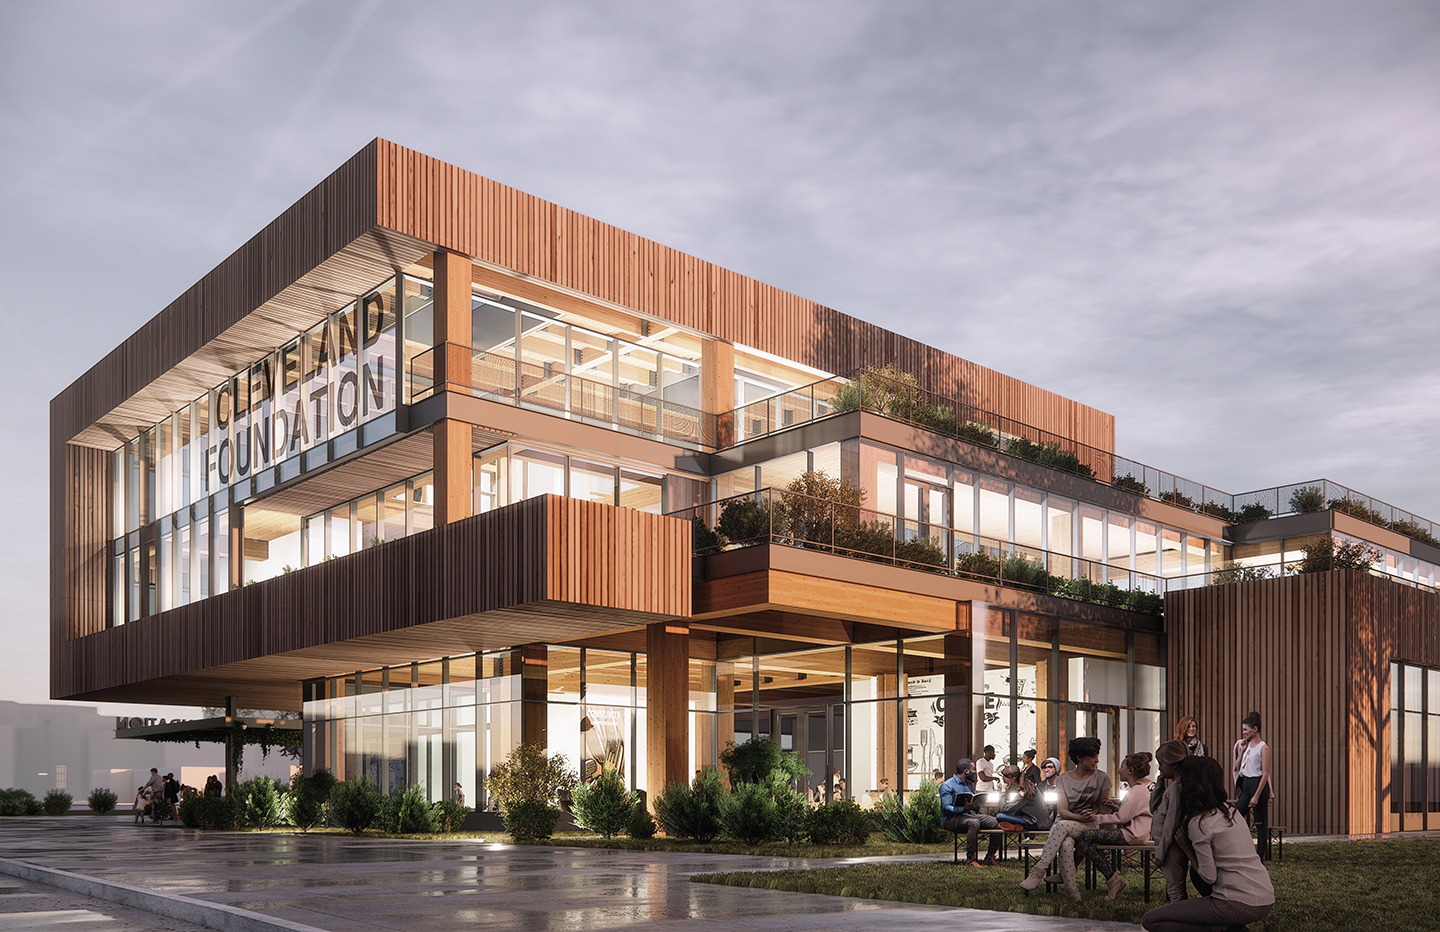 Cleveland Foundation headquarters rendering